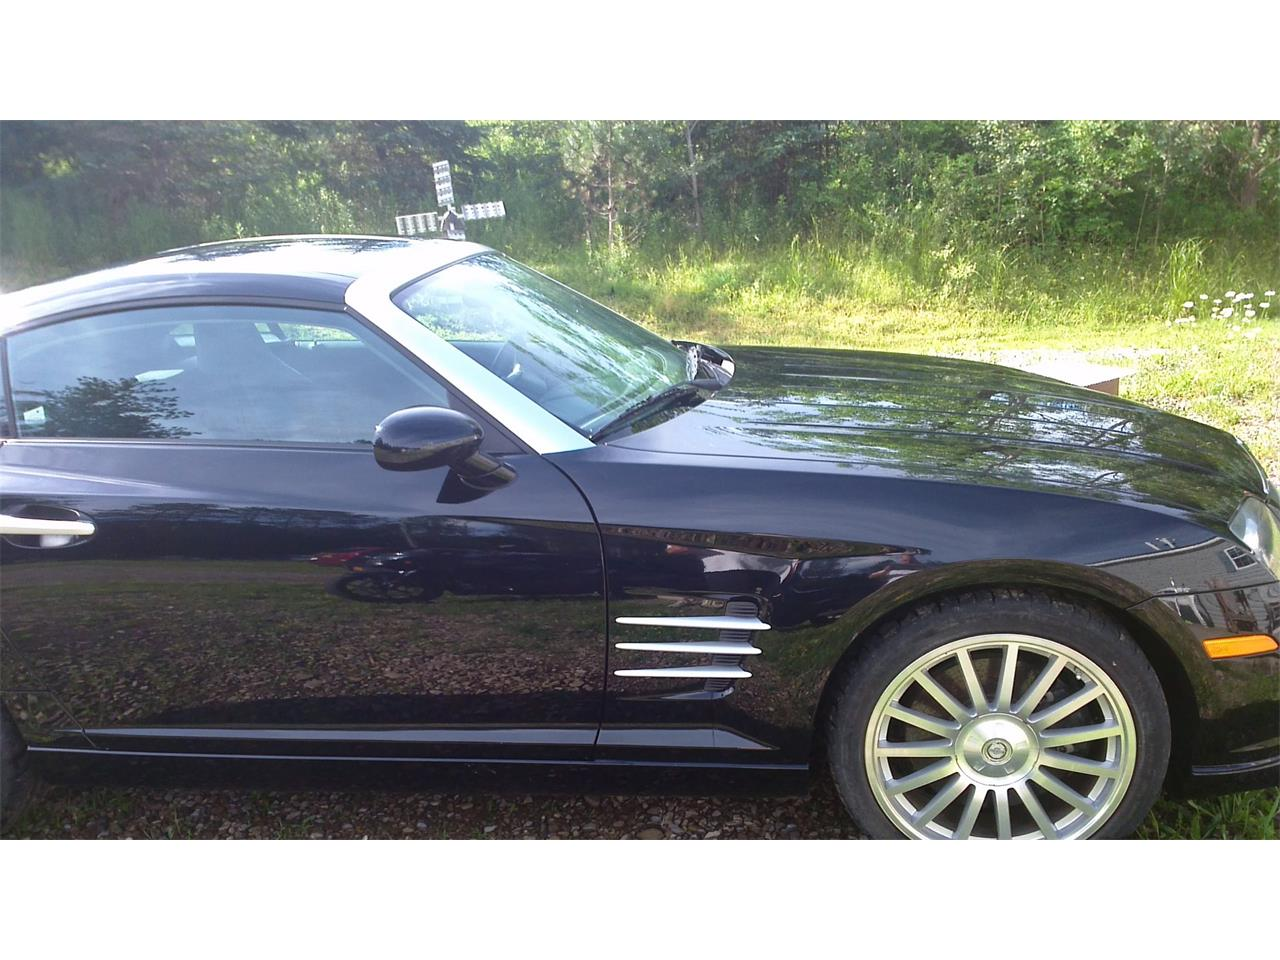 Large Picture of 2005 Chrysler Crossfire - $18,000.00 - NR5M